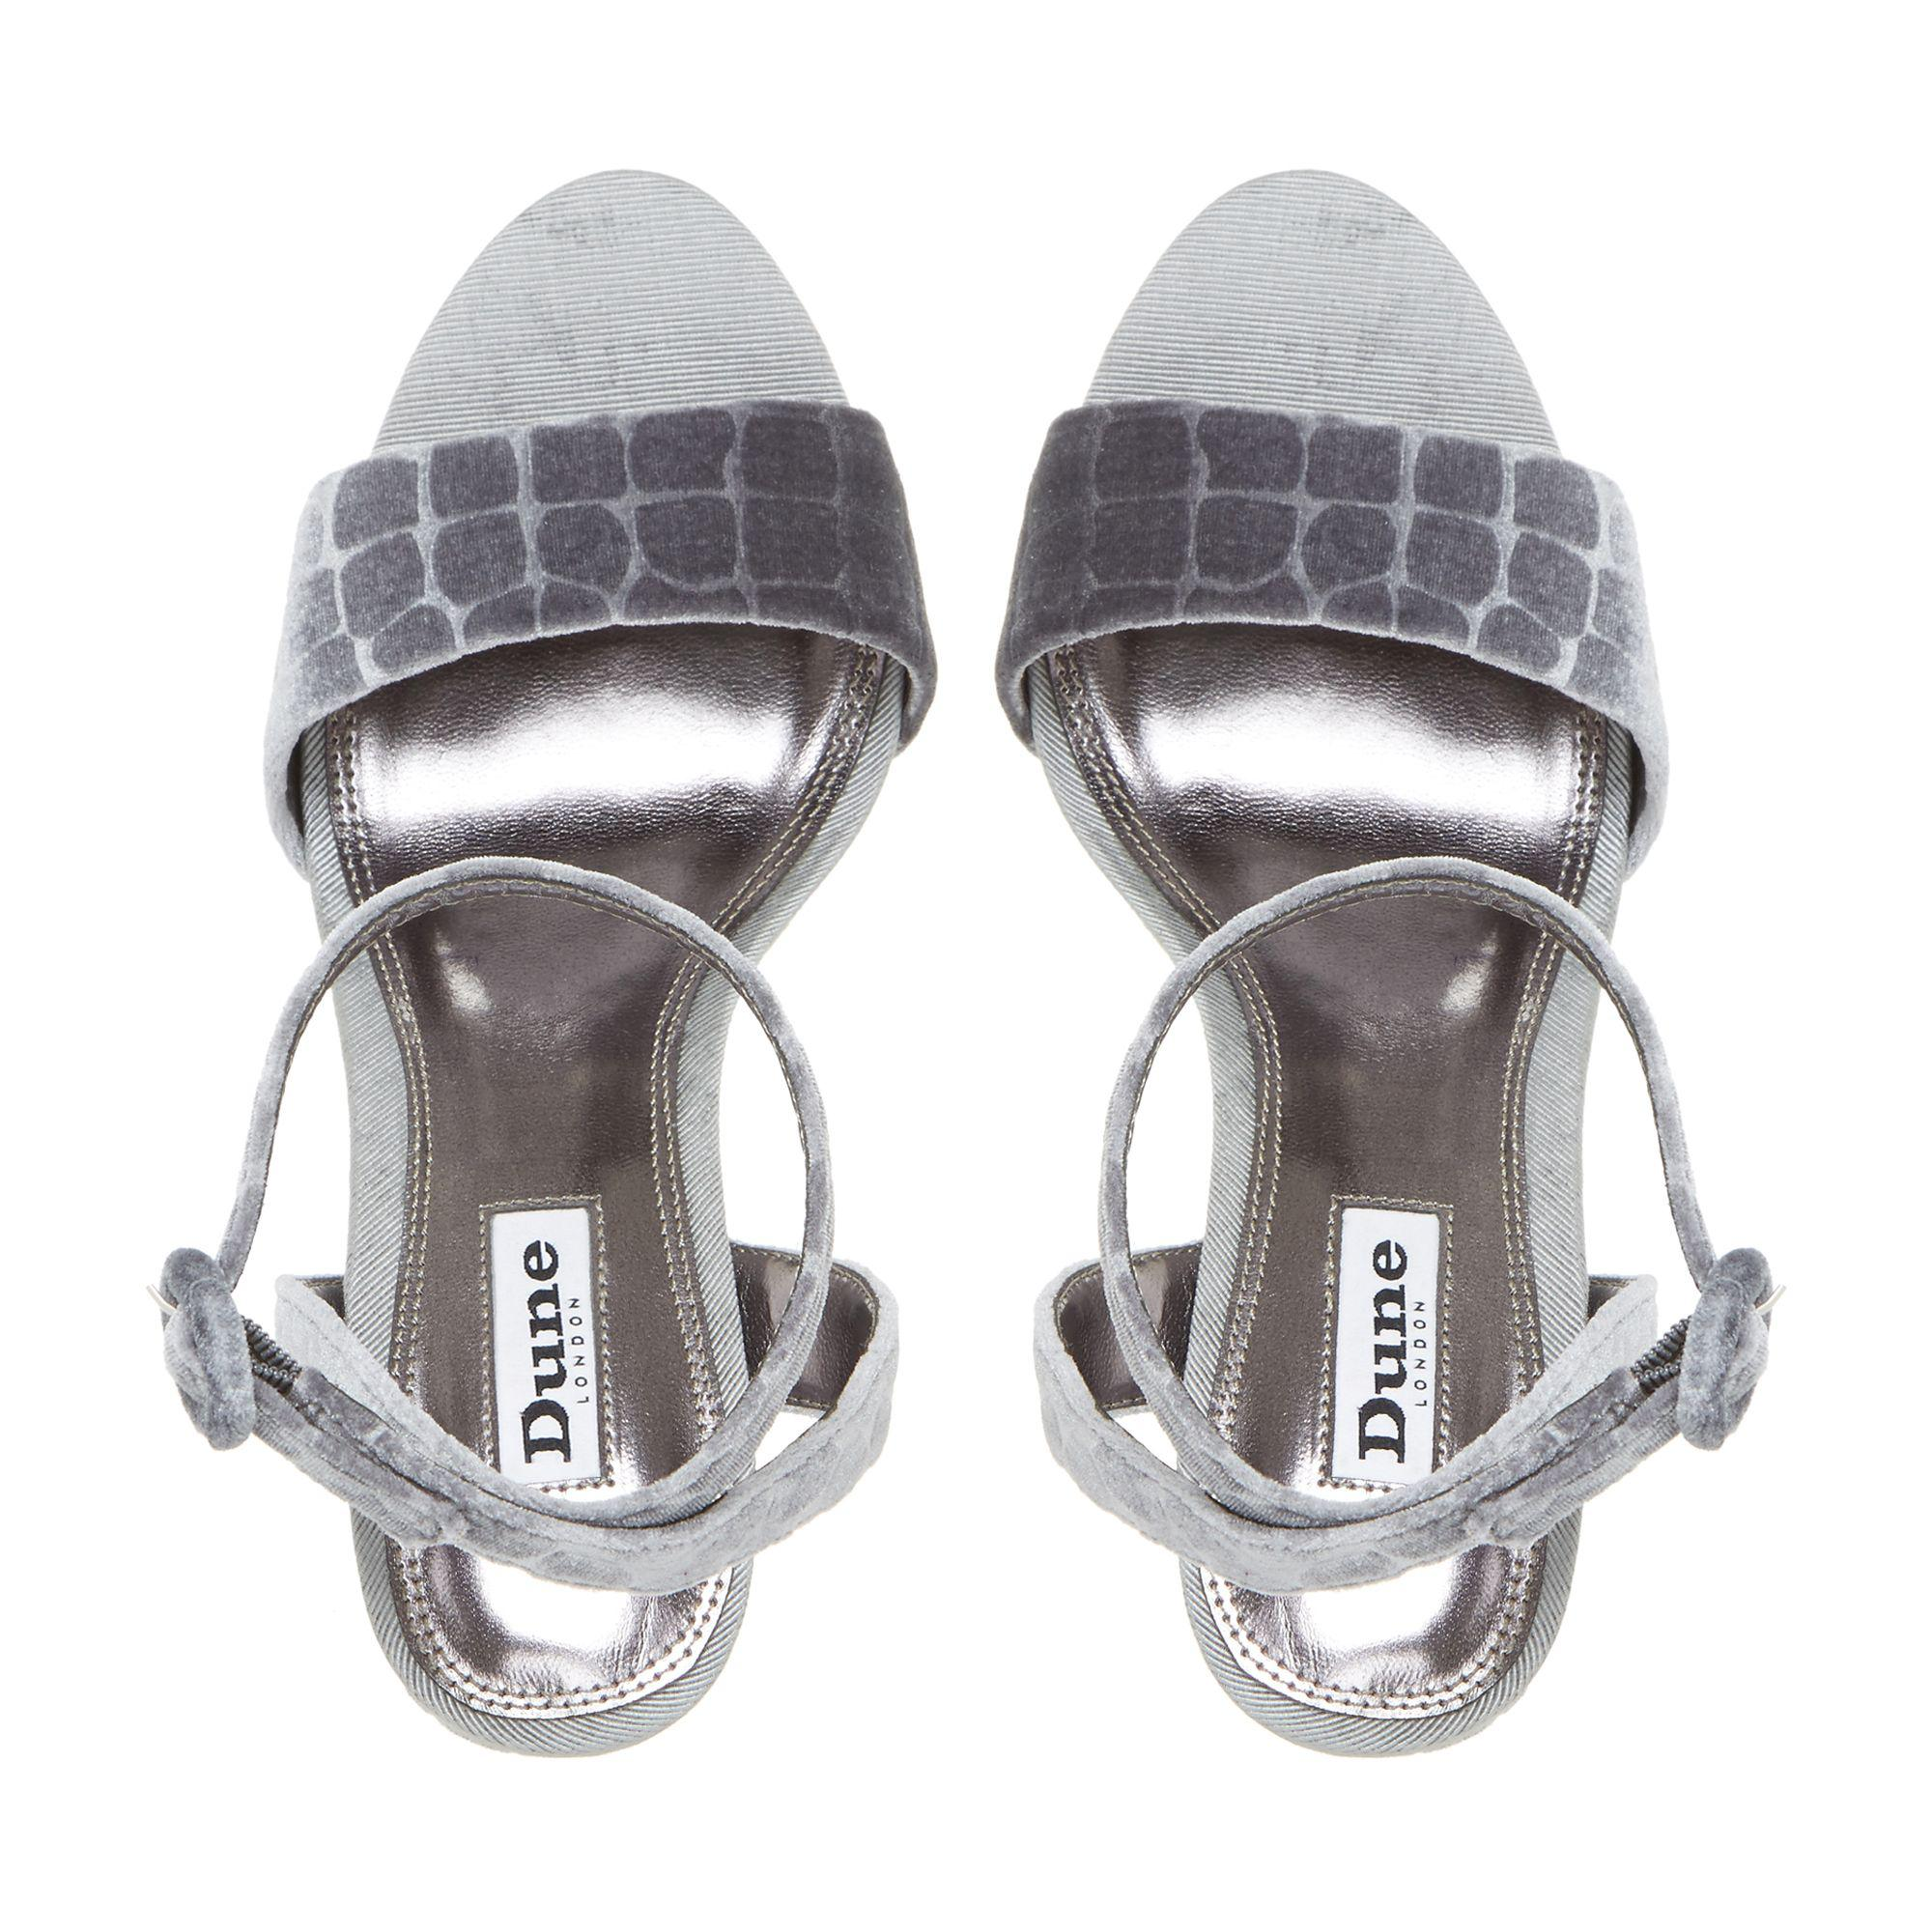 5d9cc593dcc Dune Morisey Block Heeled Platform Sandals in Gray - Save 33% - Lyst